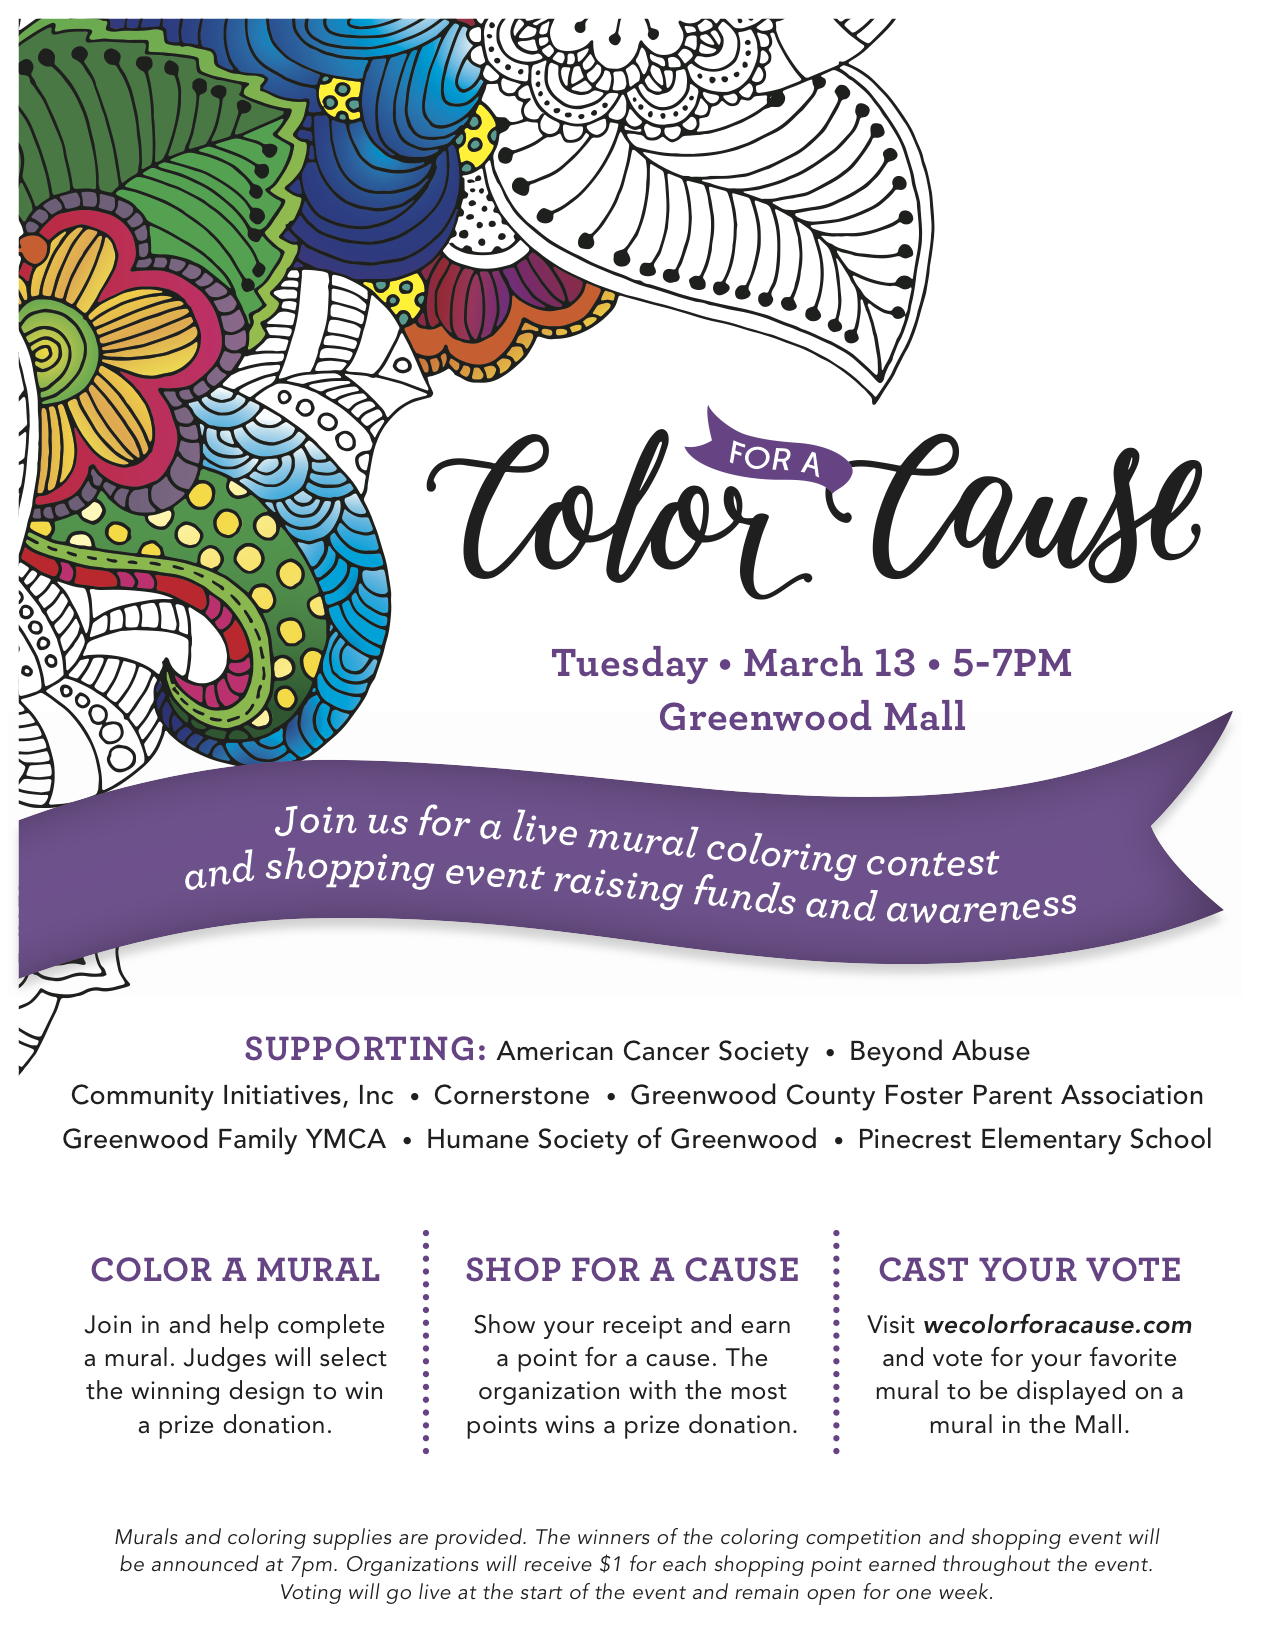 color for a cause tuesday march 13 from 5pm 7pm greenwood mall